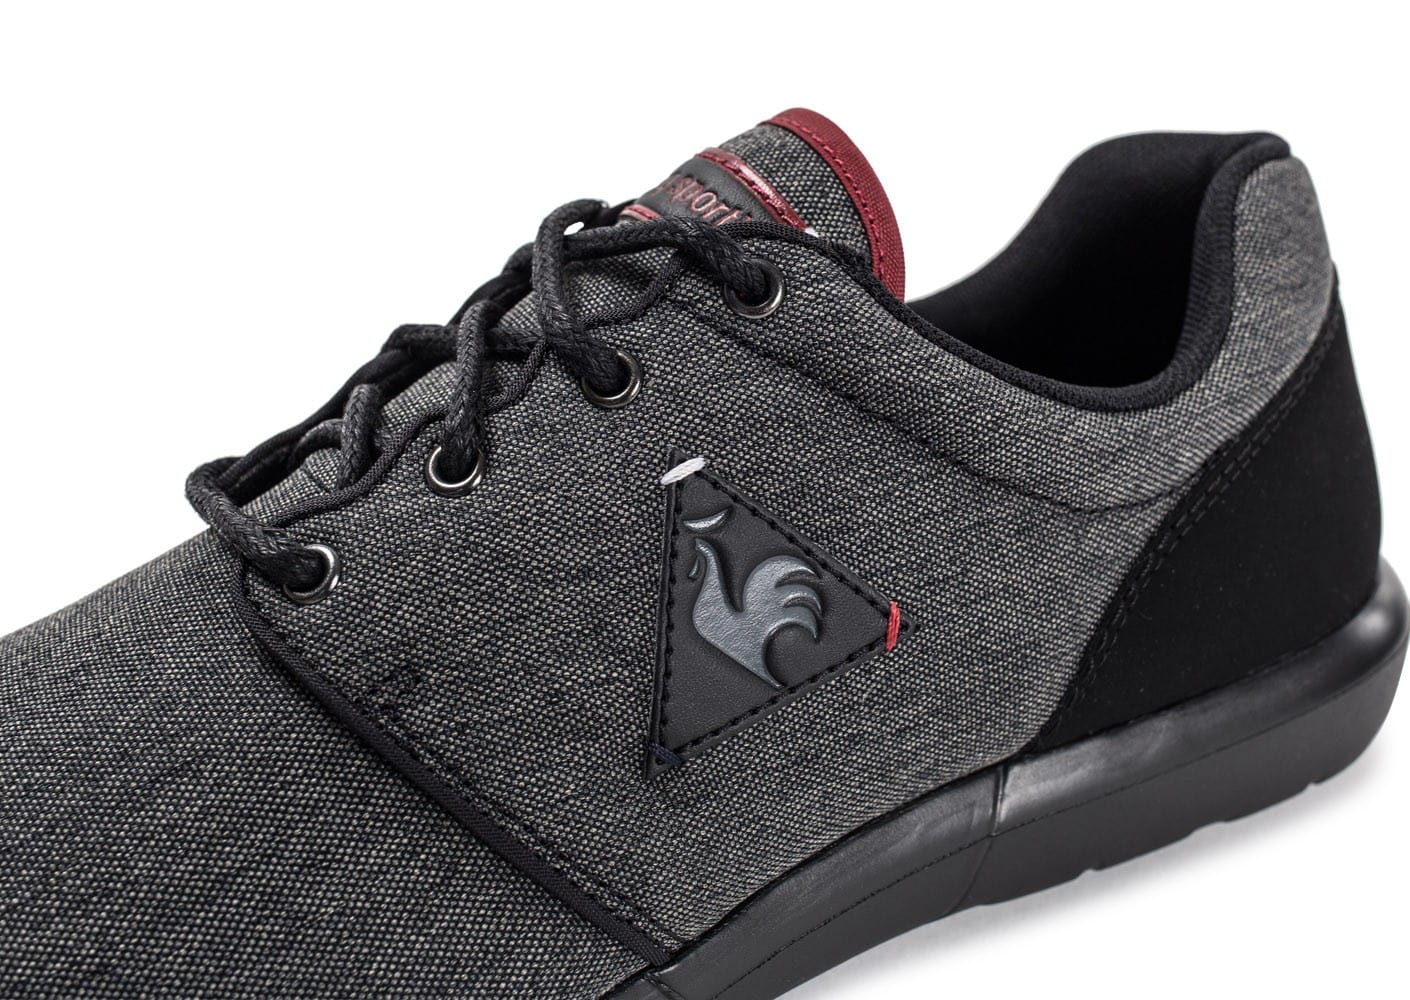 Dynacomf 2 Tones Noir Anthracite Le Coq Sportif Baskets/Running HommeLe Coq Sportif kAARG